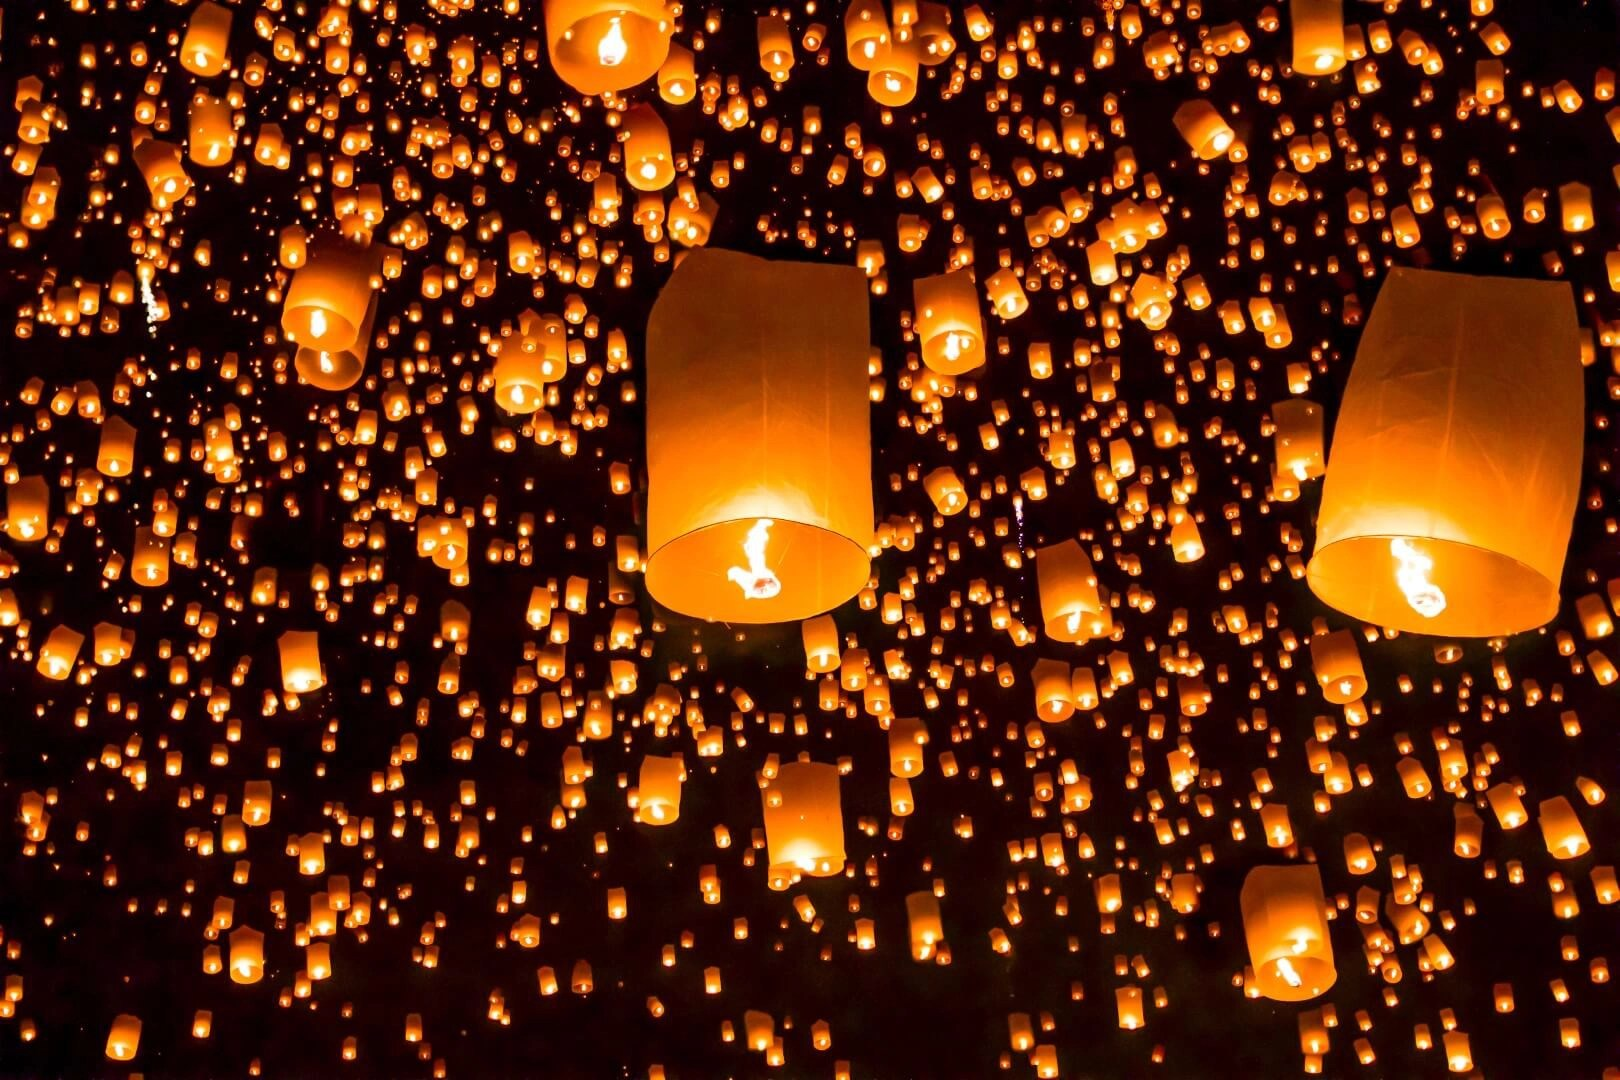 A spectacle of a thousand floating lights: The Chiang Mai Lantern Festival